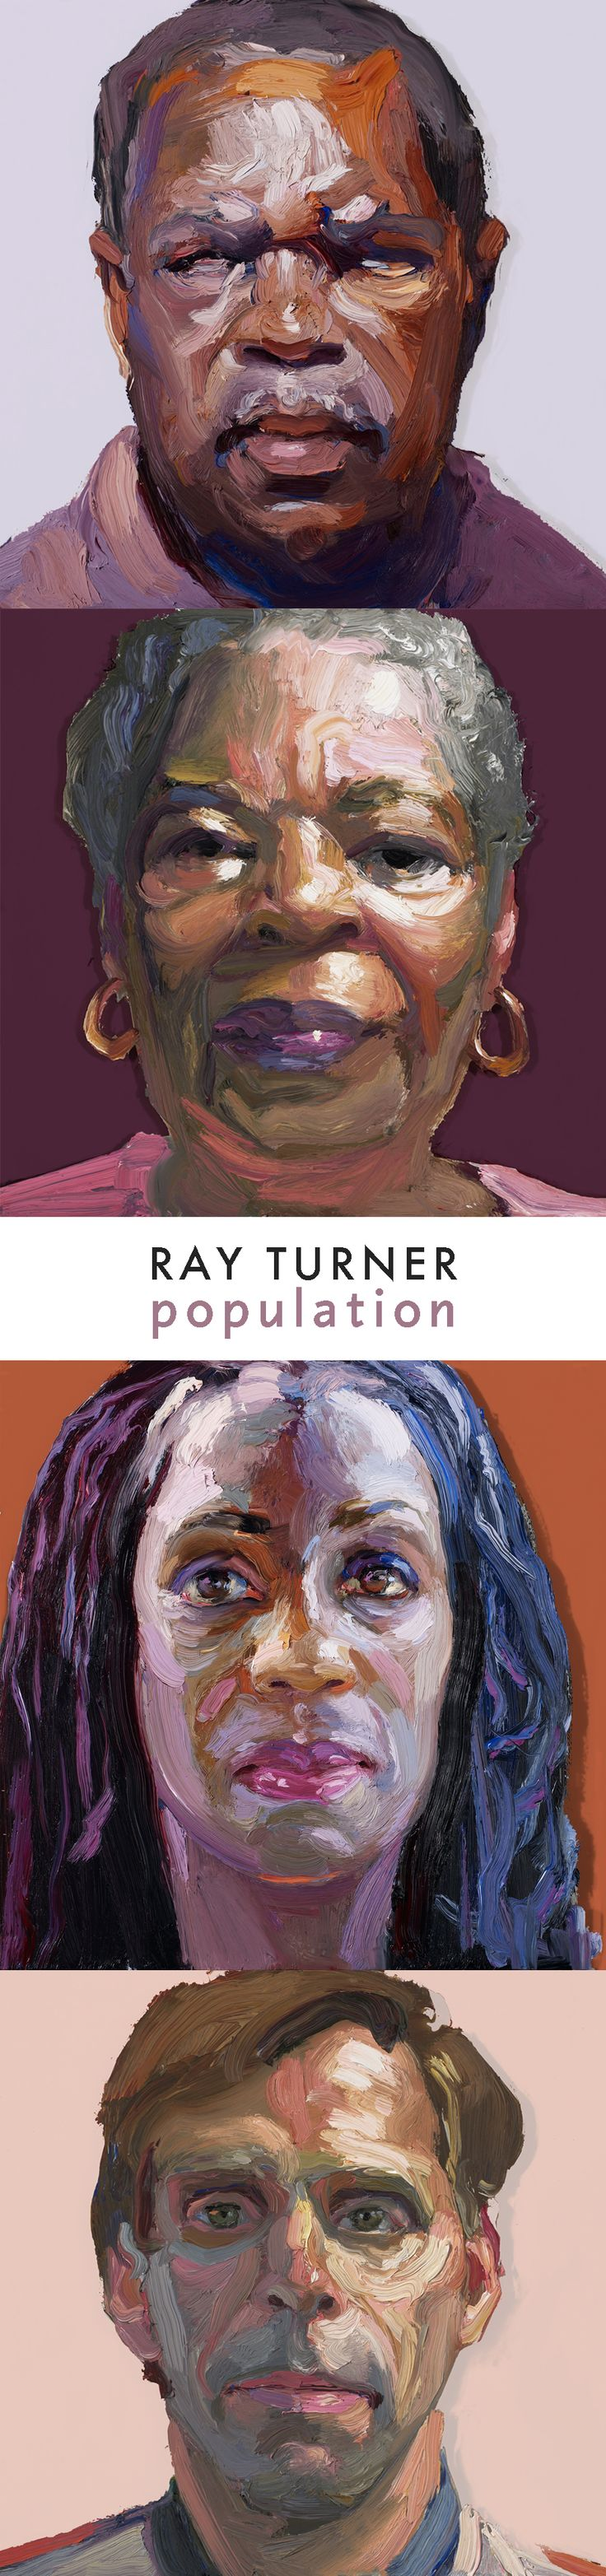 Portraits from Ray Turner's Population exhibition in Akron, Ohio. Ray Turner travels the country to meet and paint members of the community in the cities where Population is shown. Their portraits join hundreds of others in the ever-expanding Population exhibit.